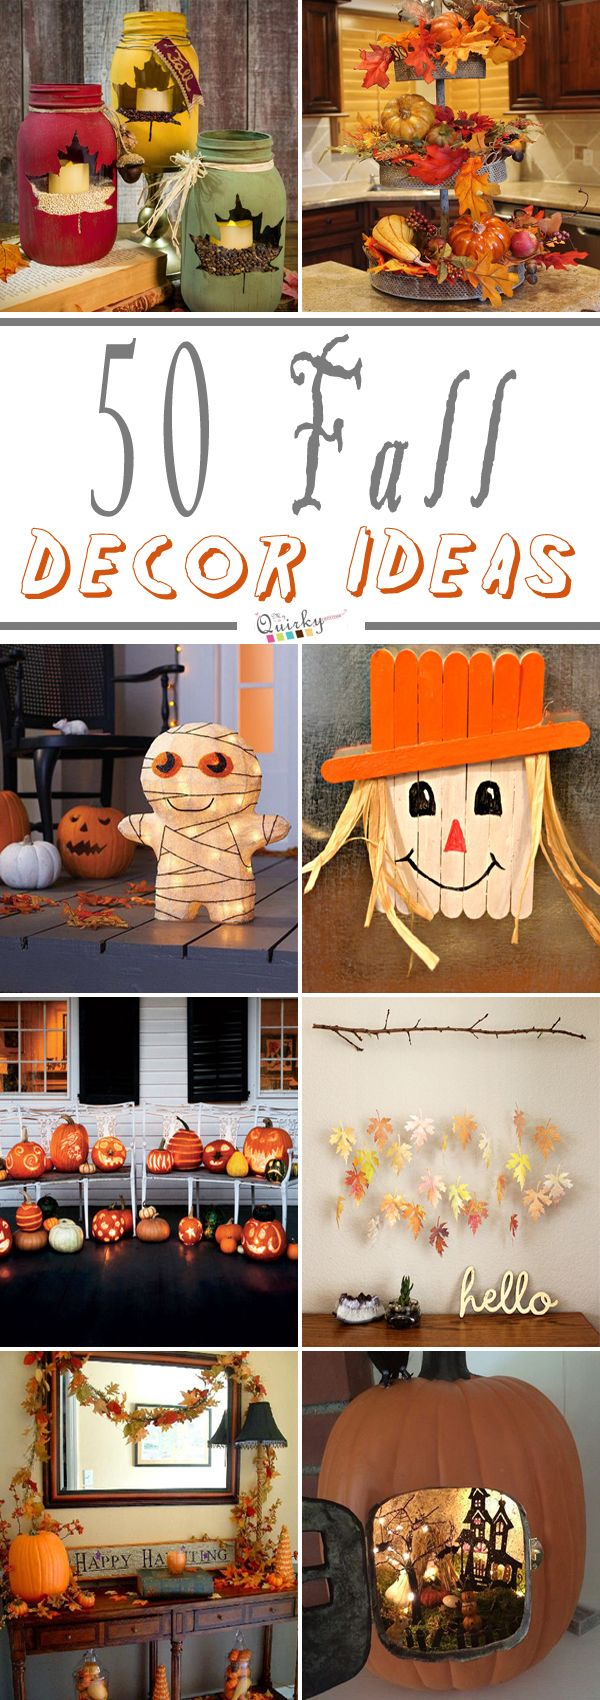 50 Fall Decor Ideas To Decorate Your Home In Style #fall